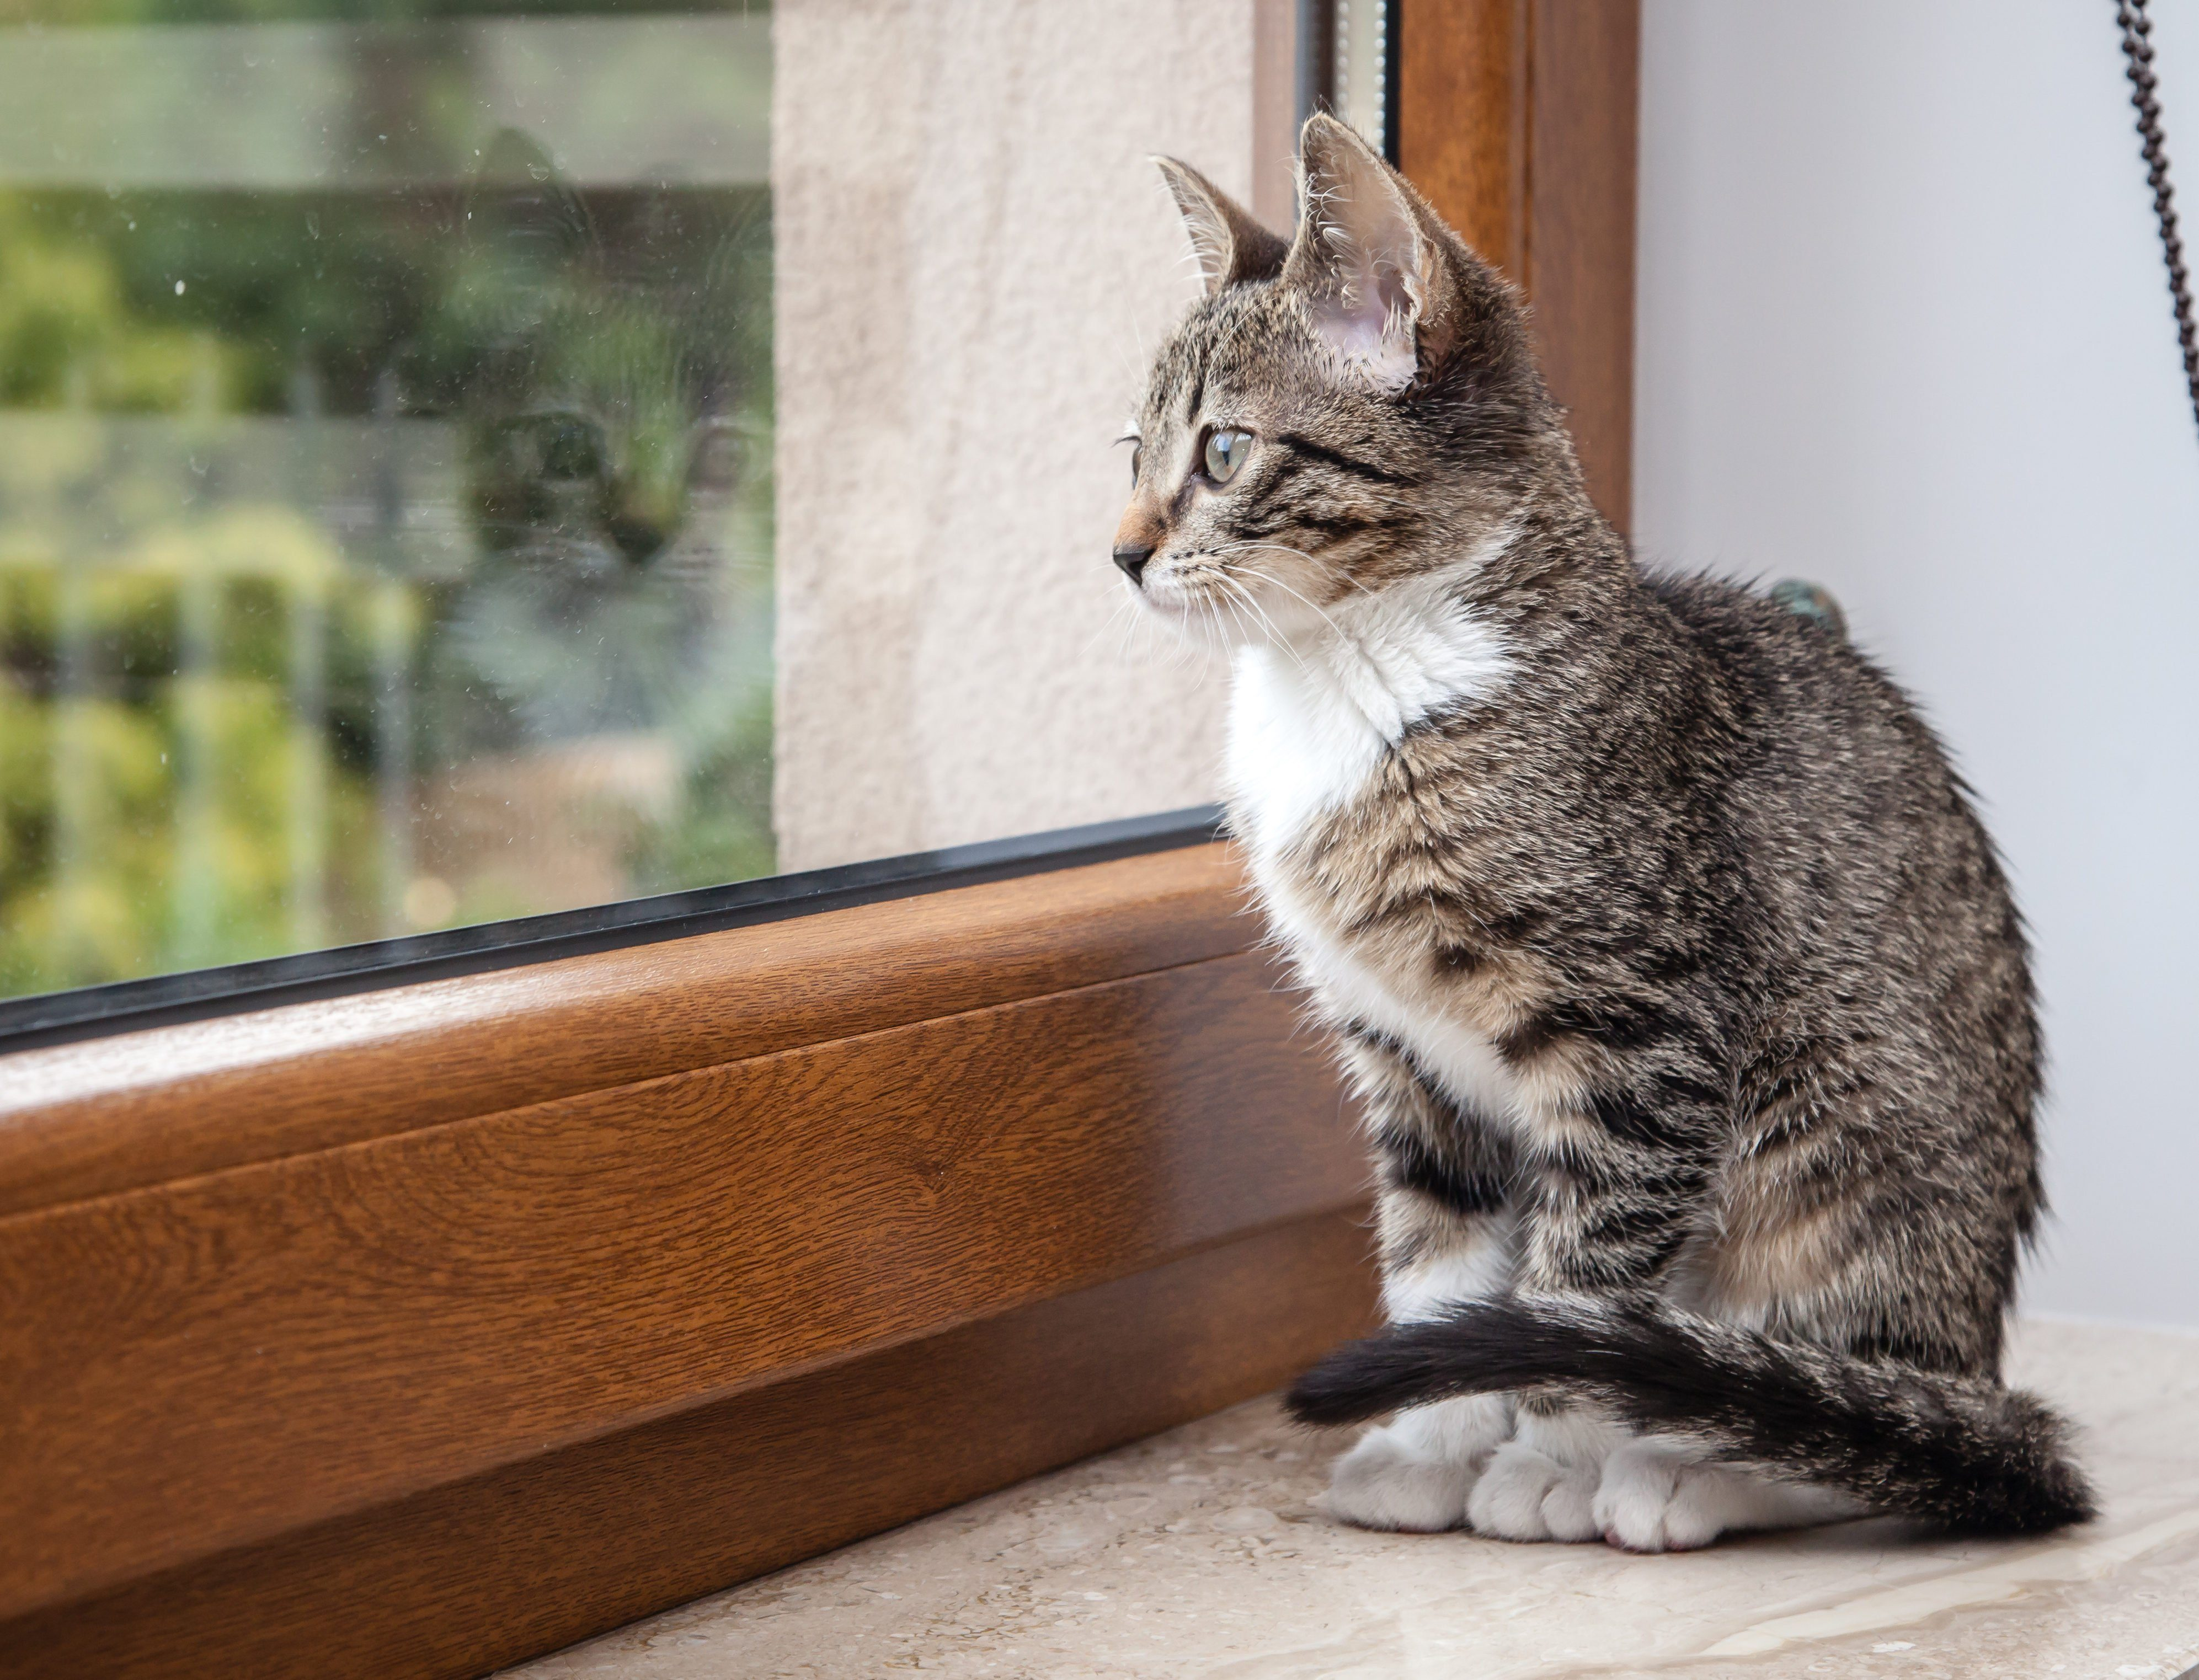 Small grey pet kitten starring out apartment window